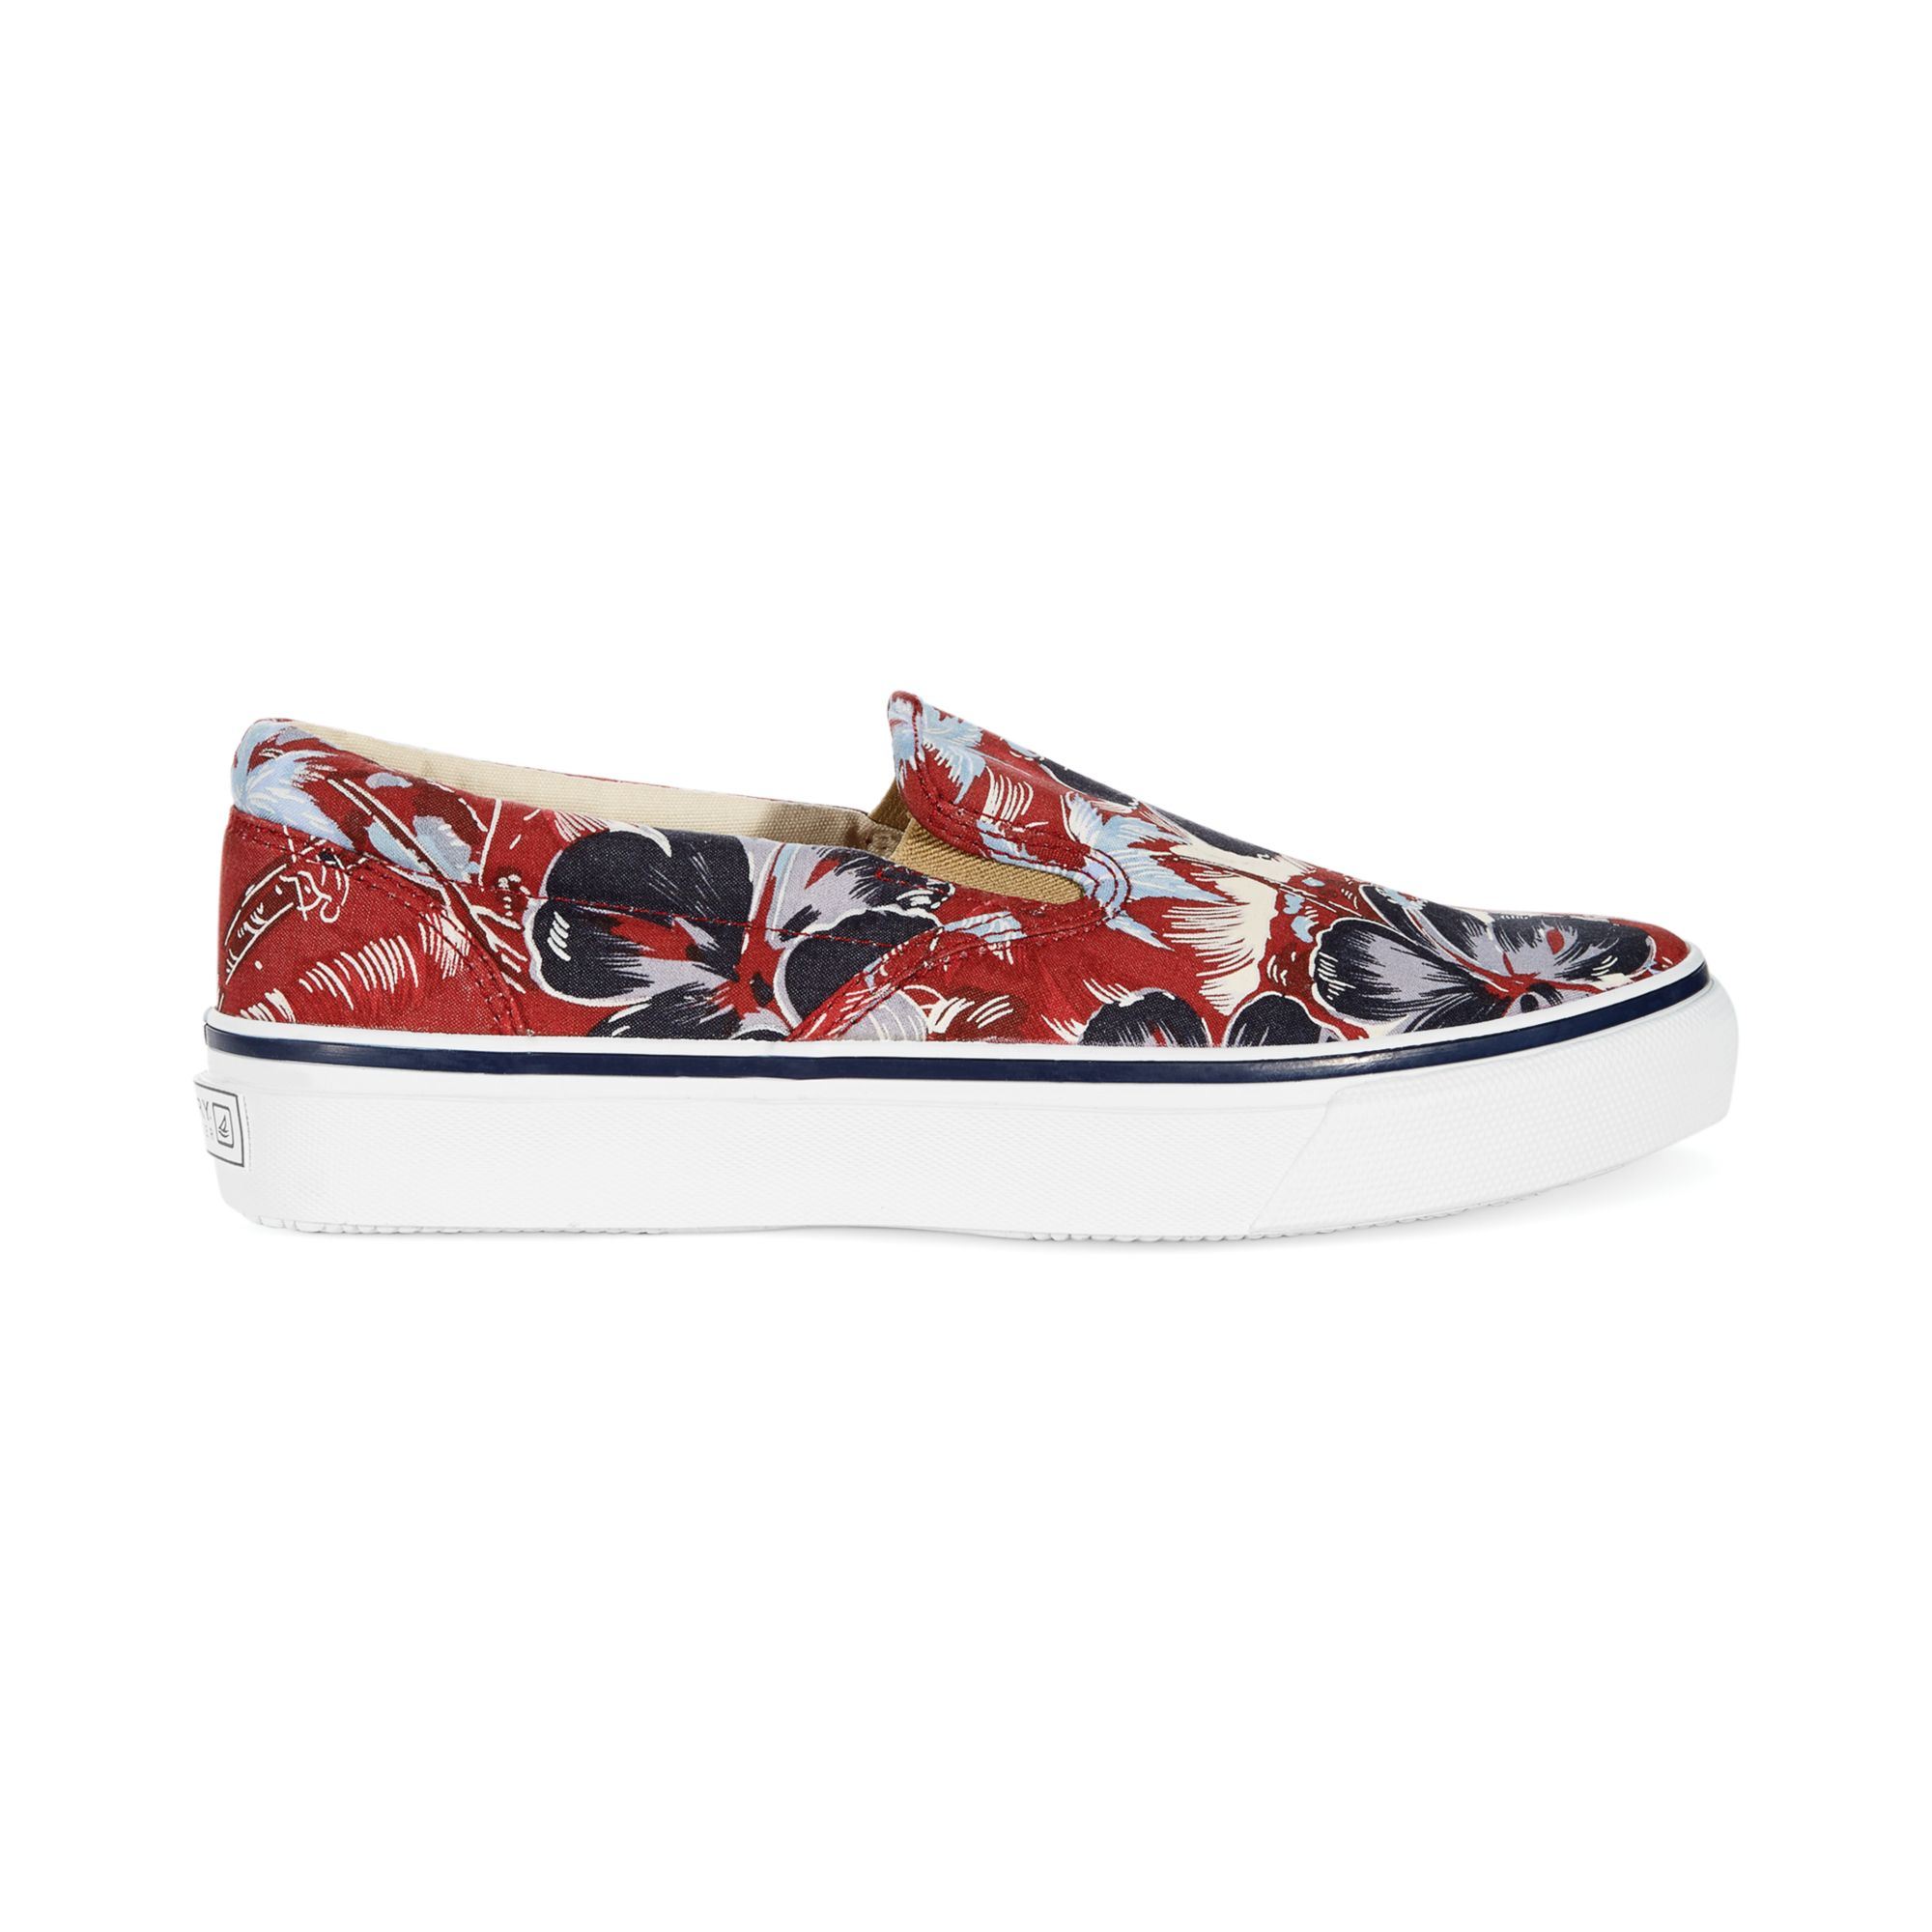 Sperry Top Sider Shoes Australia